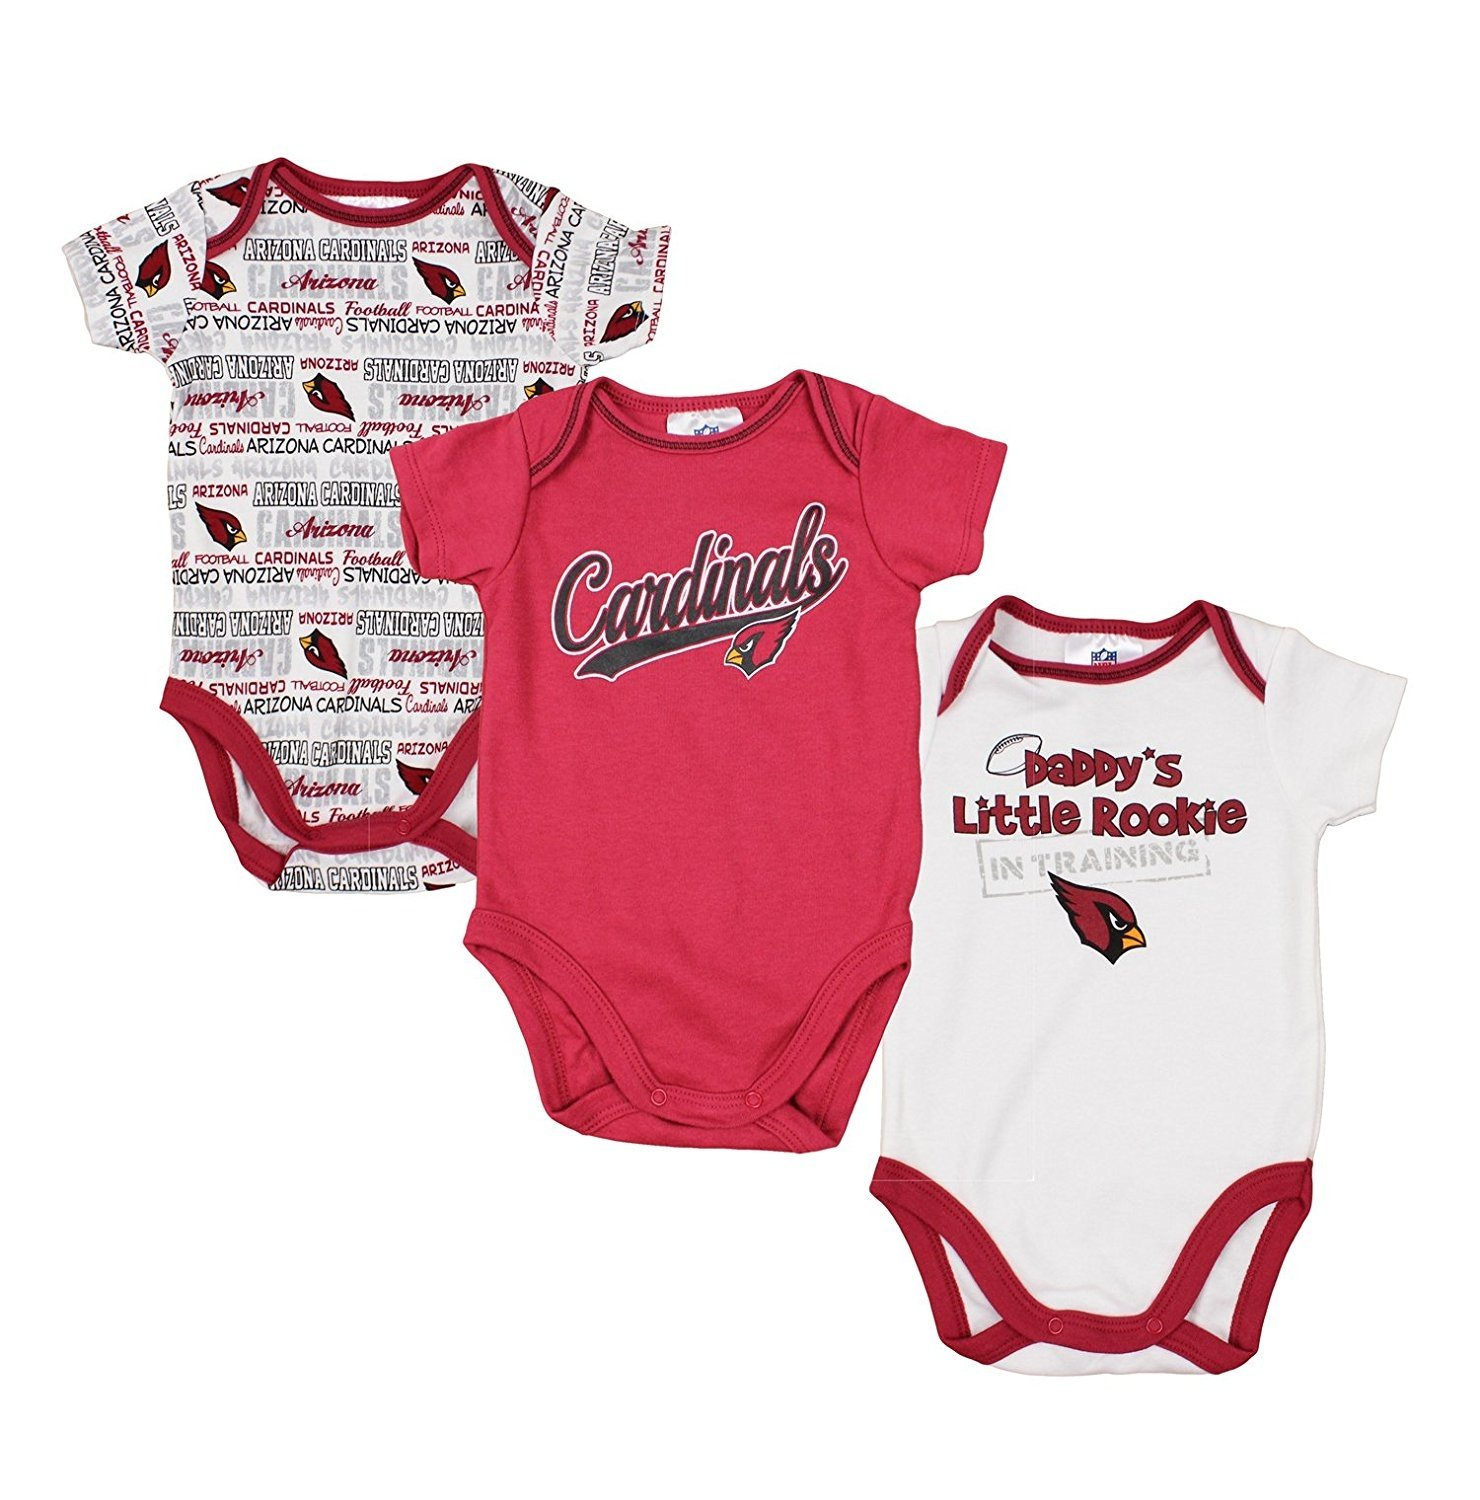 6bd4dd17065c Amazon.com  Arizona Cardinals NFL Unisex Baby Infant 3 Piece Bodysuit Set